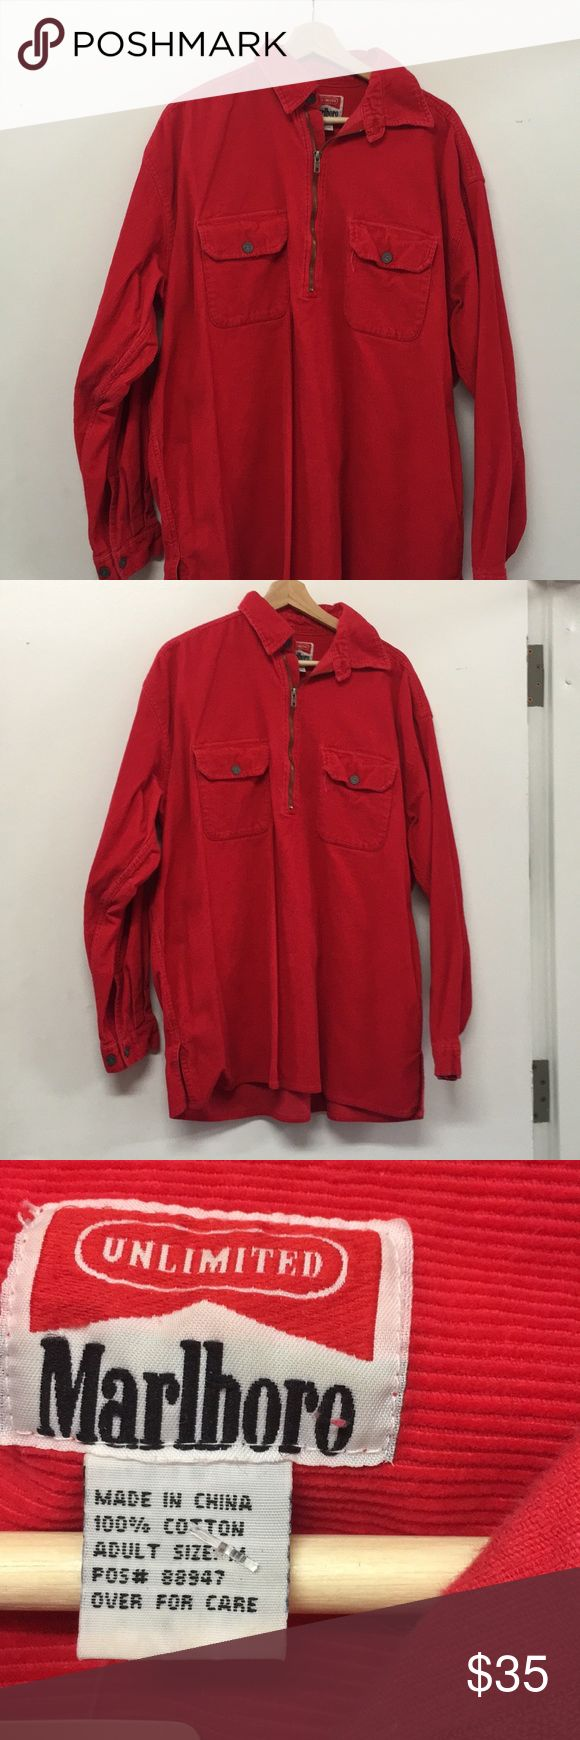 Marlboro Corduroy Red Zip Up Jacket amazing vintage piece. no flaws. size adult med. runs on the longer side. Vintage Sweaters Zip Up